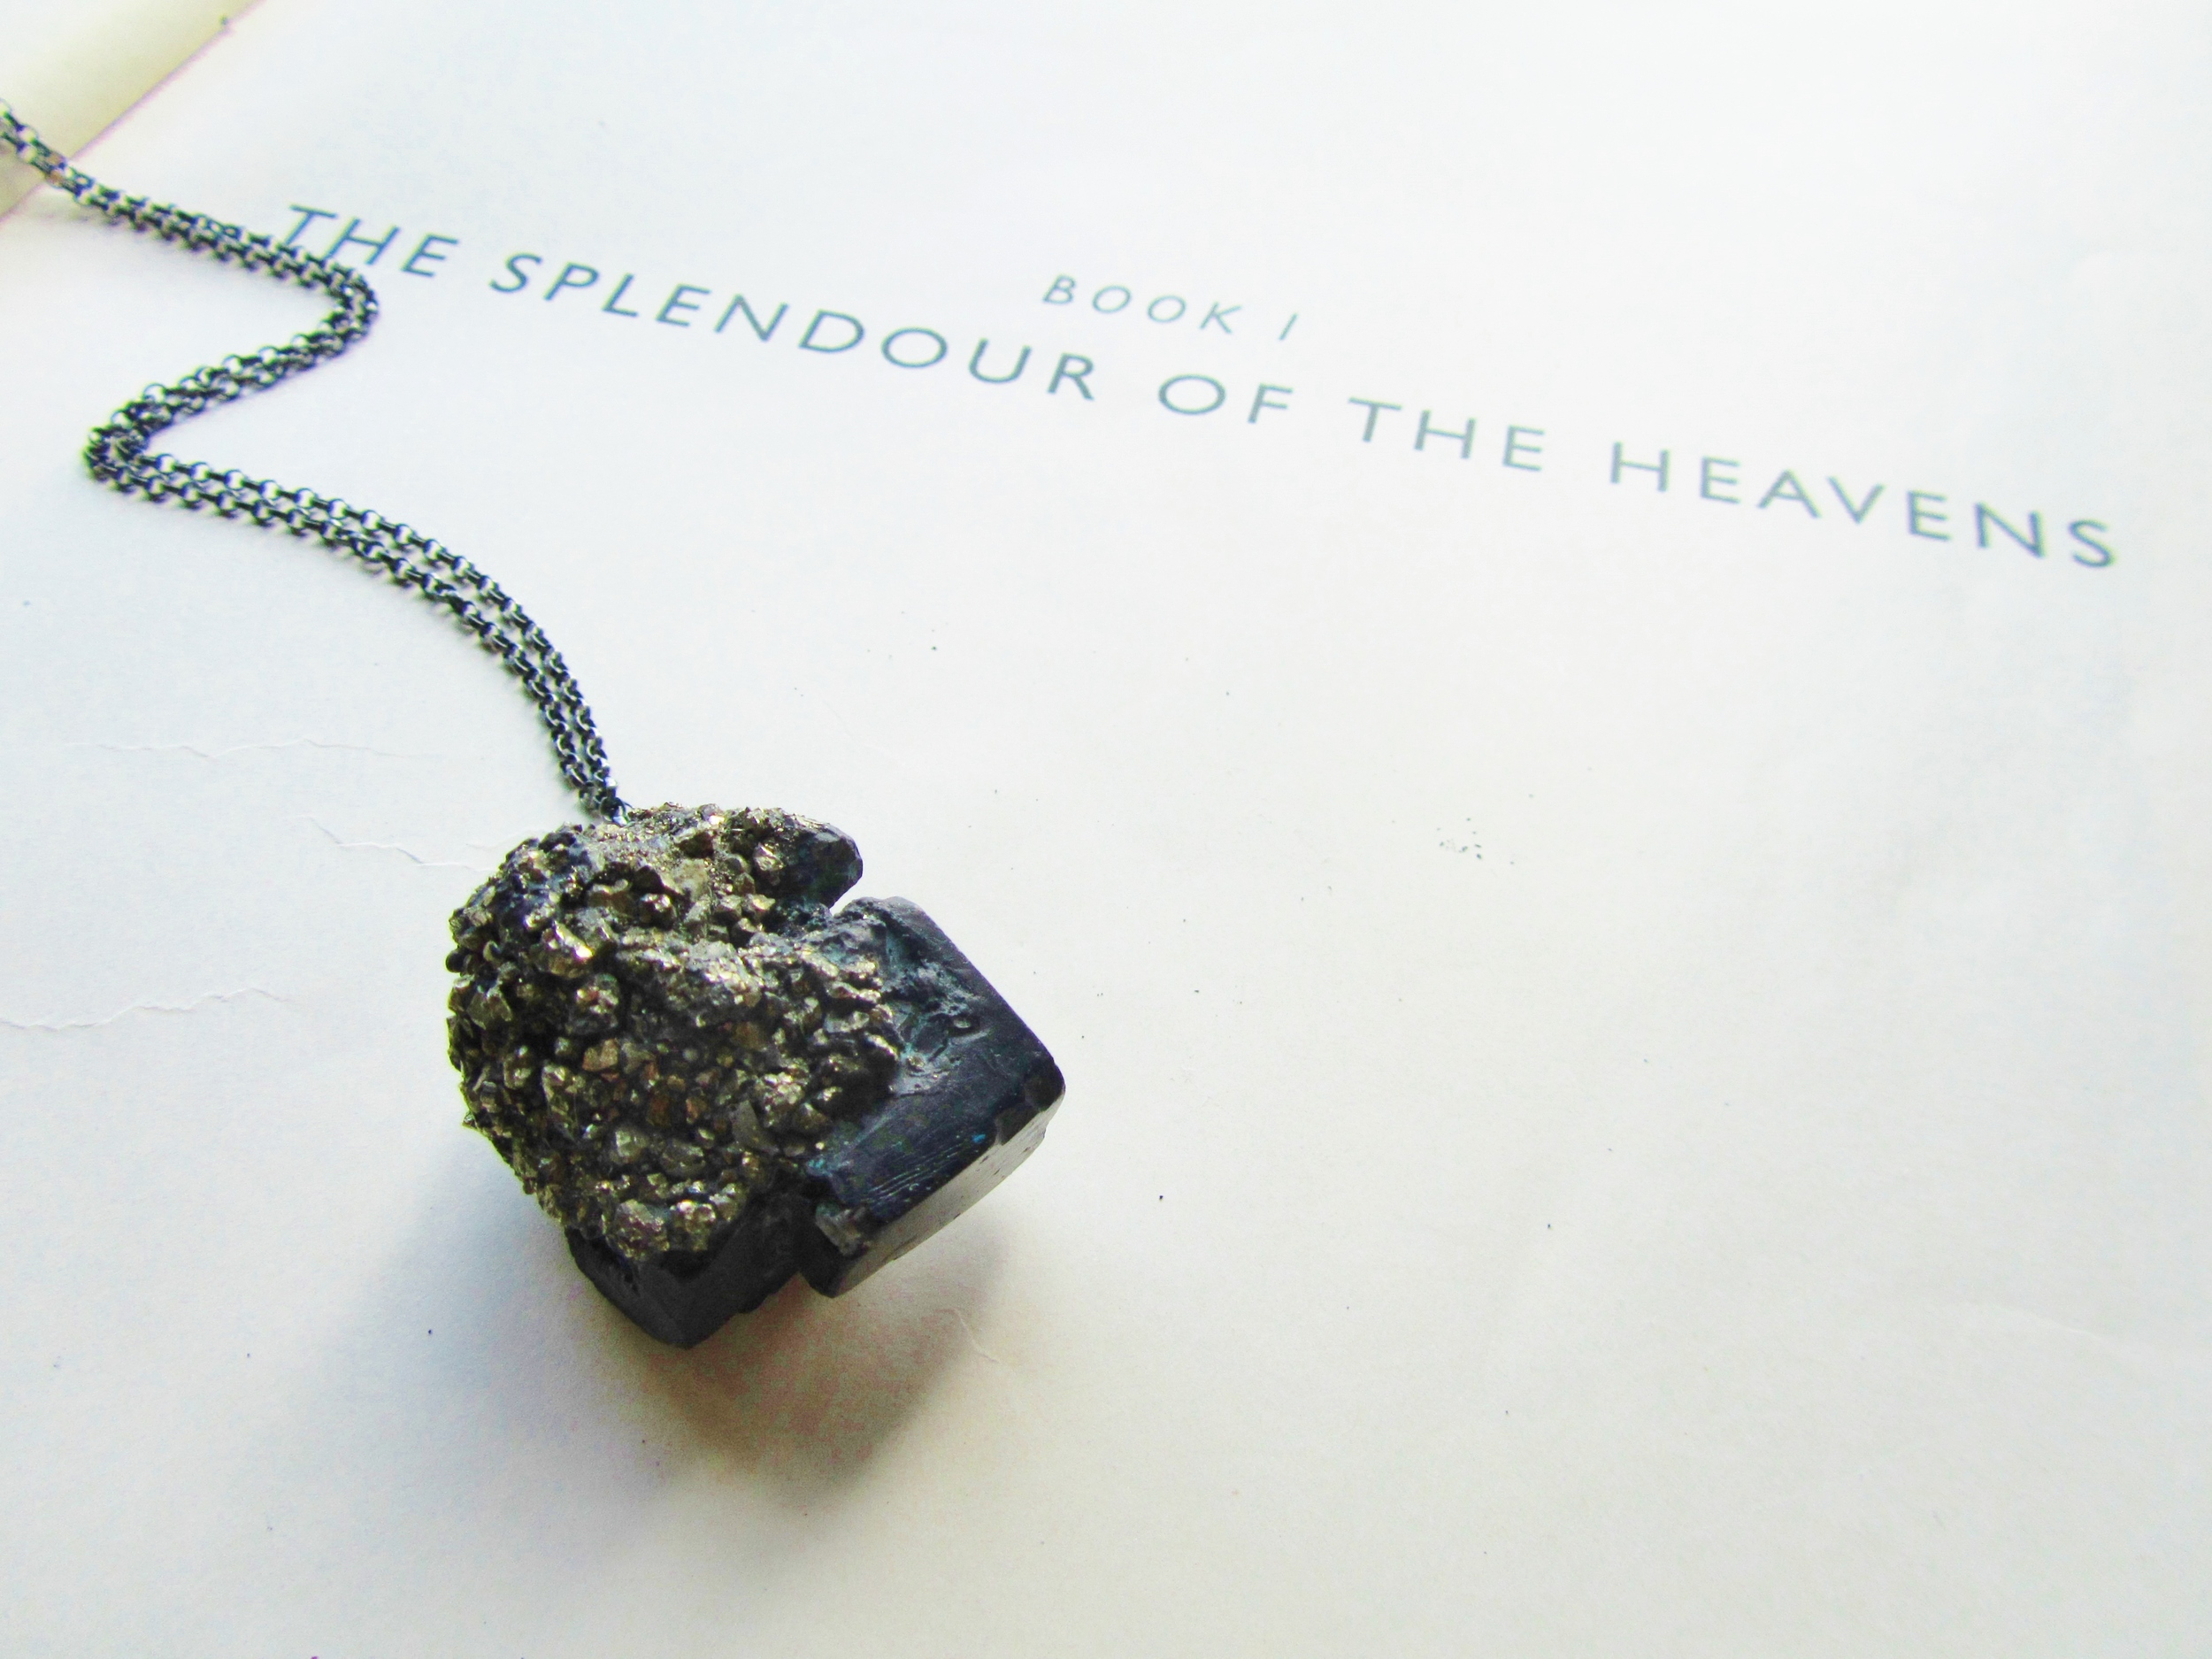 pyrite cube necklace pyrite nugget encrusted jade mellor.JPG